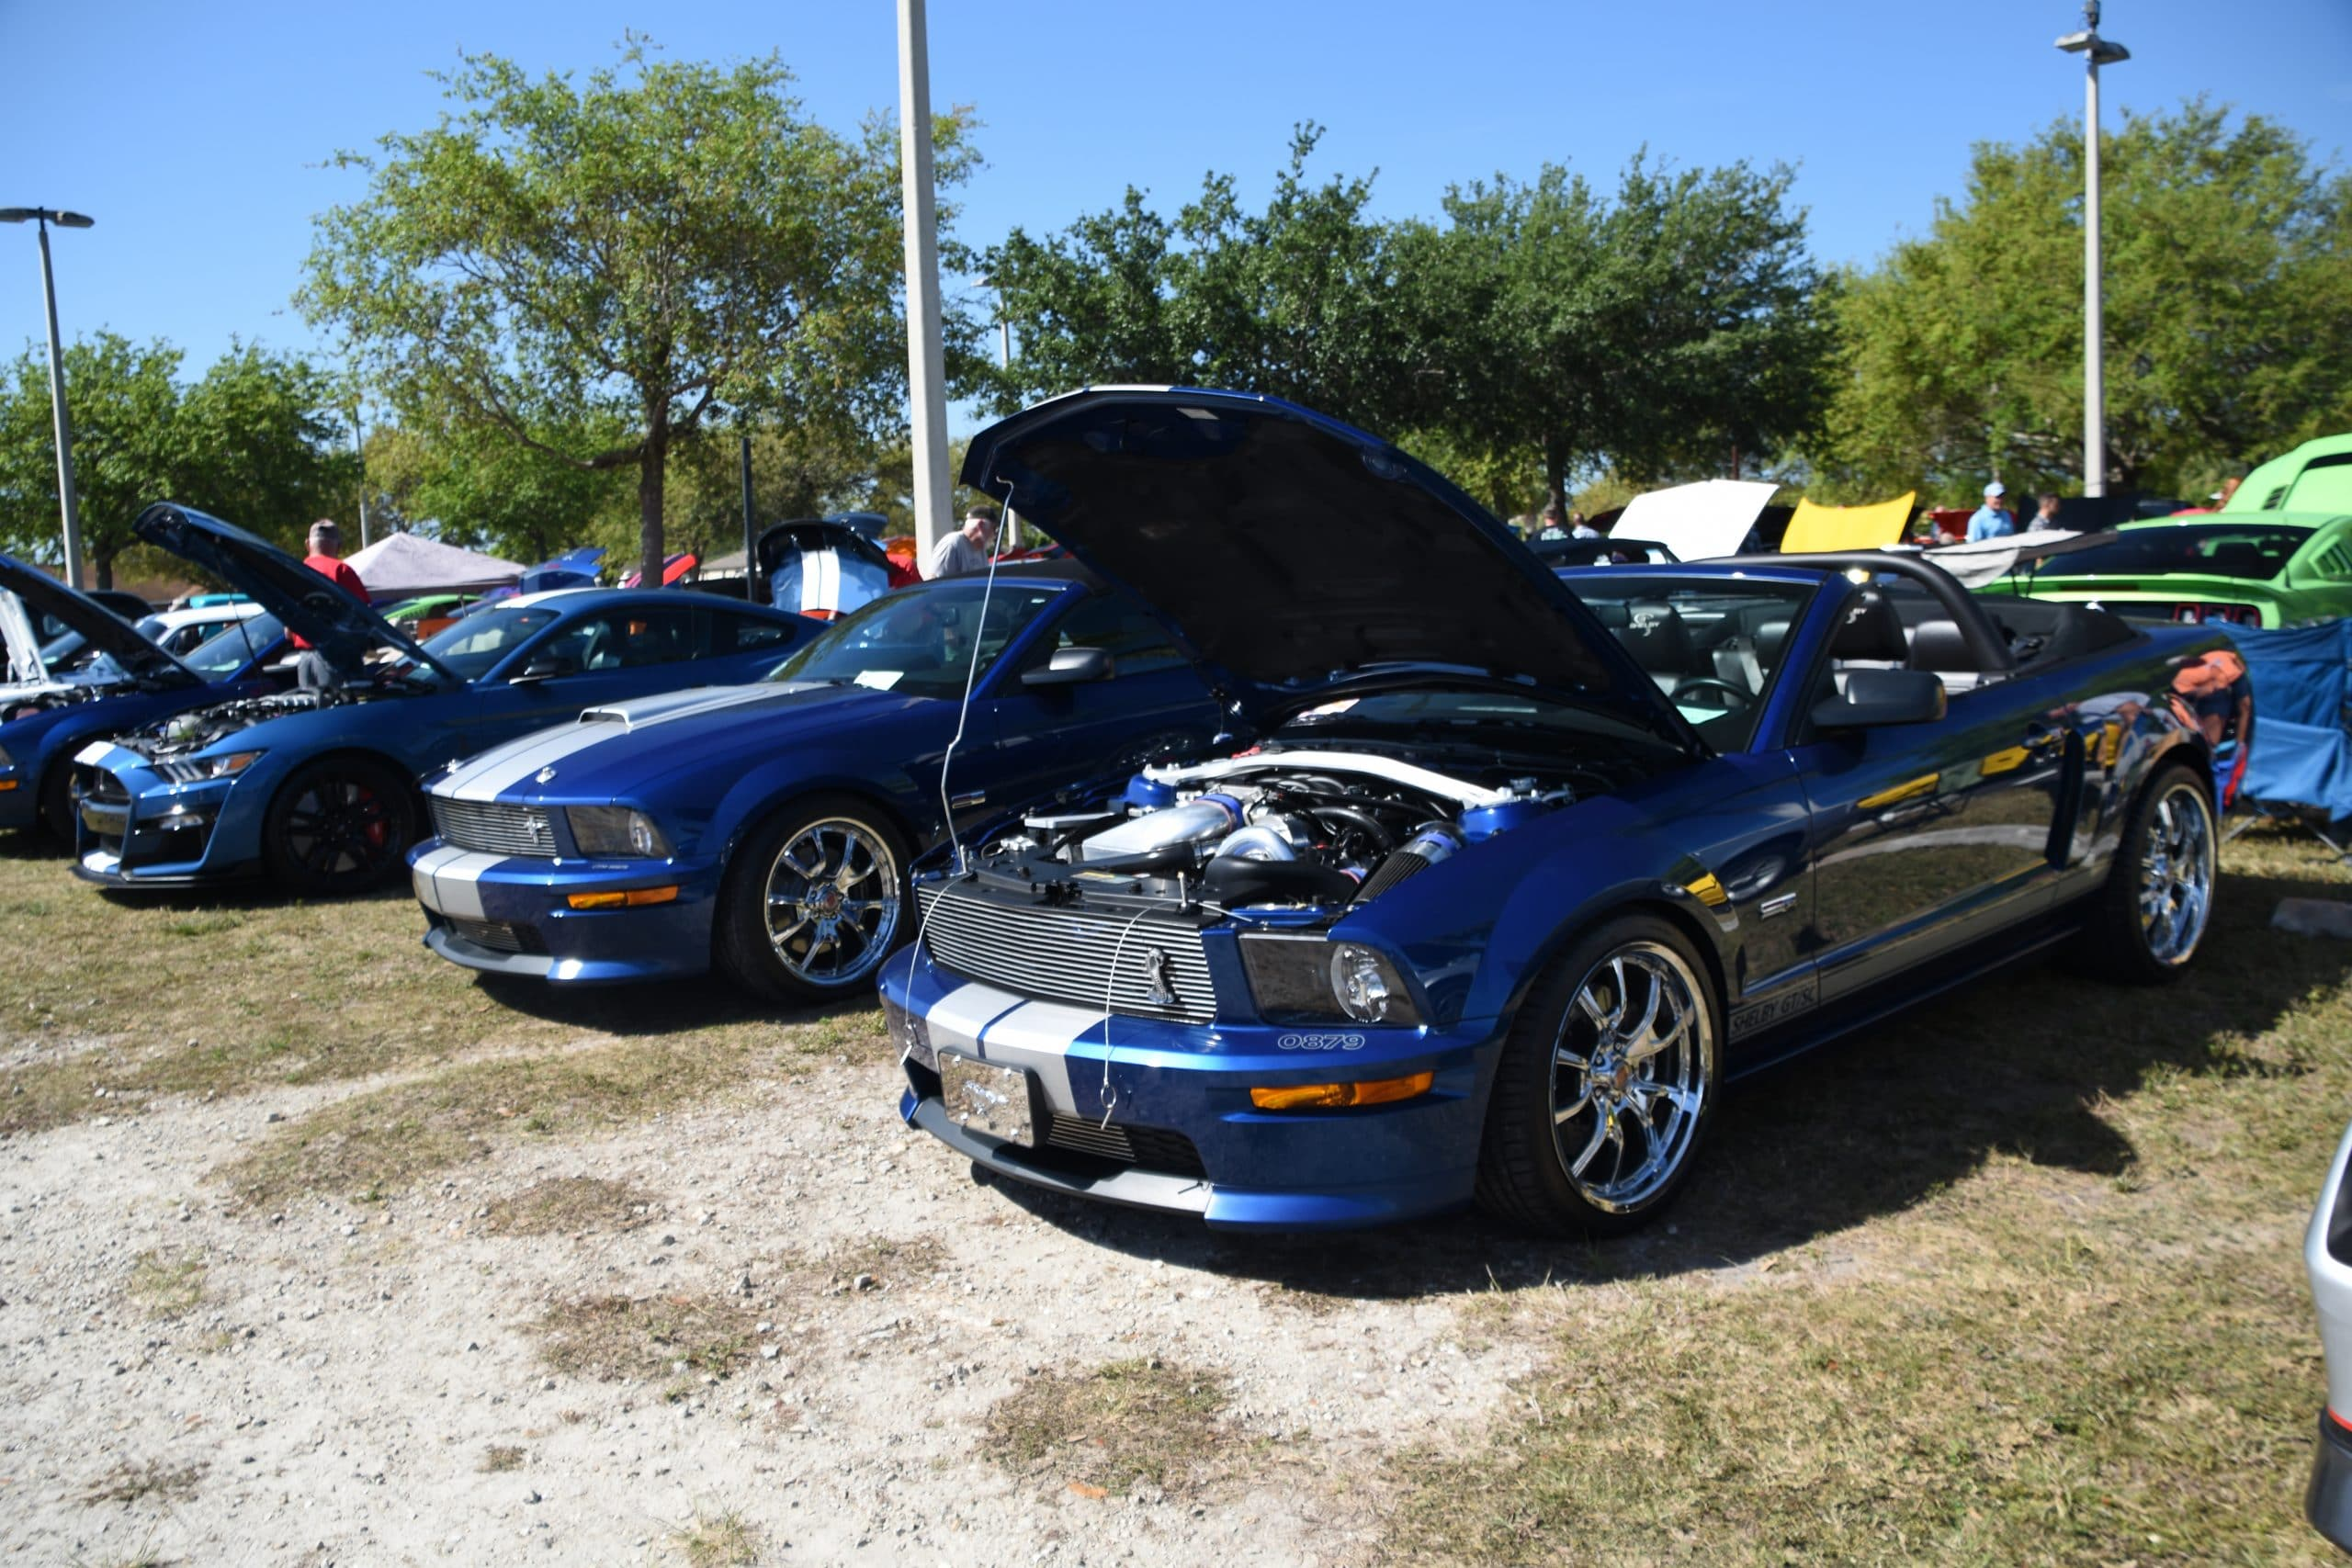 Two blue Shelby GT 350's